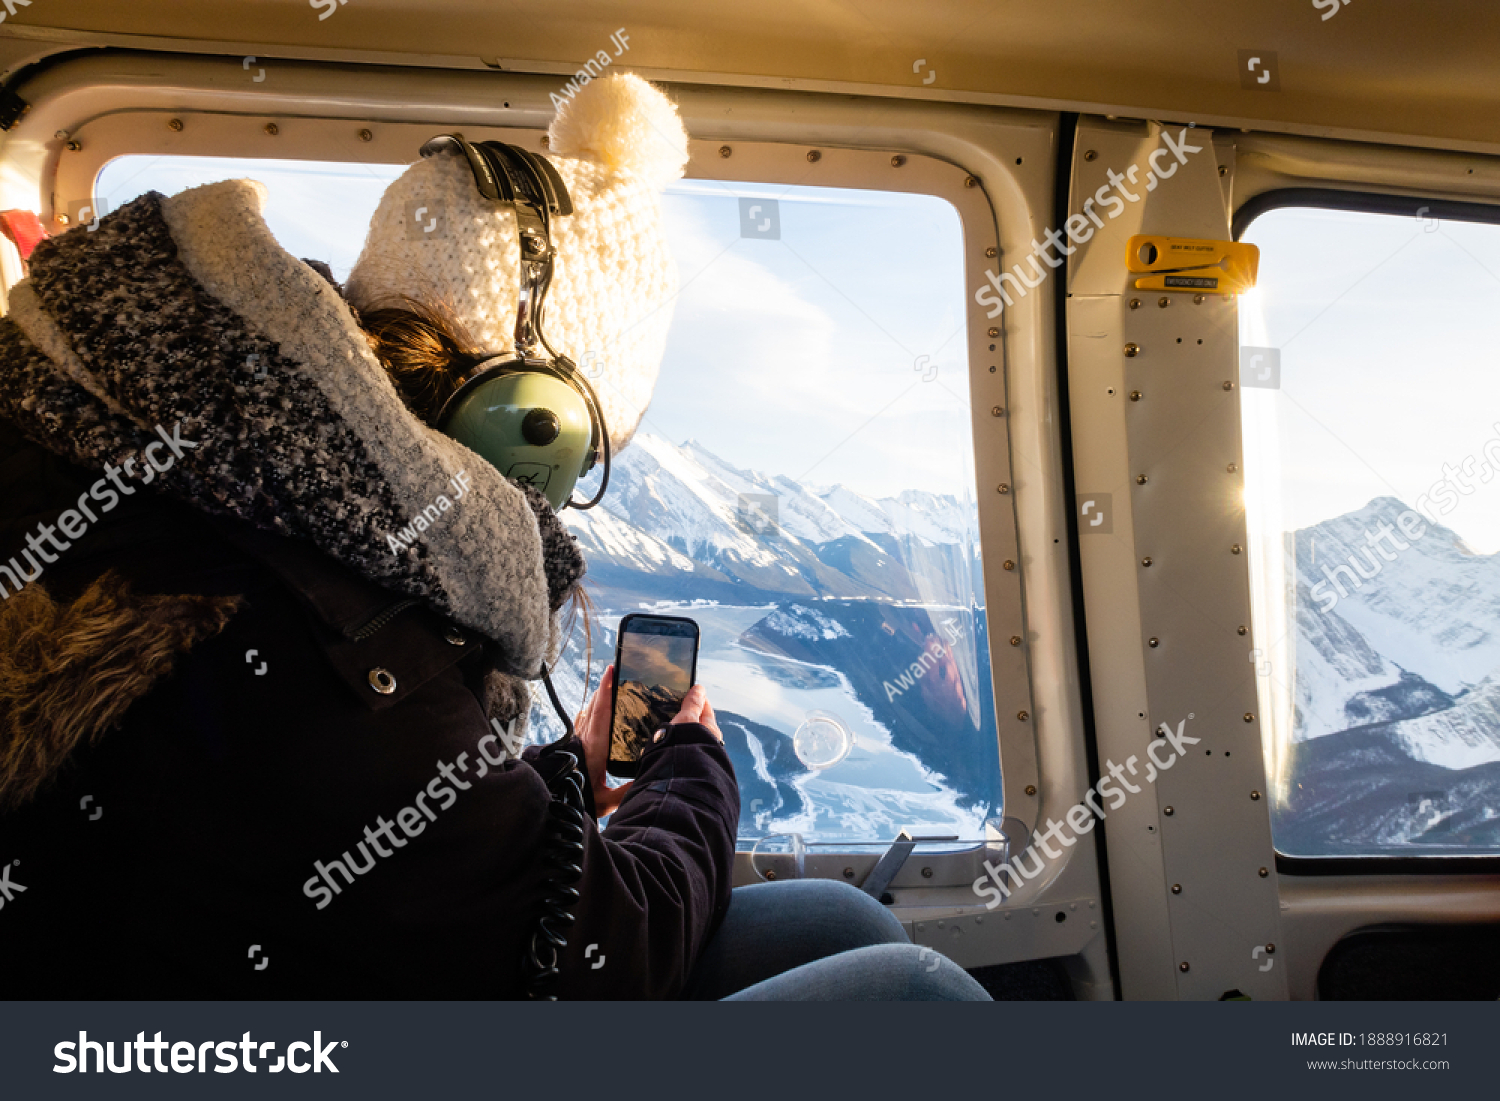 stock-photo-canmore-canada-december-tour